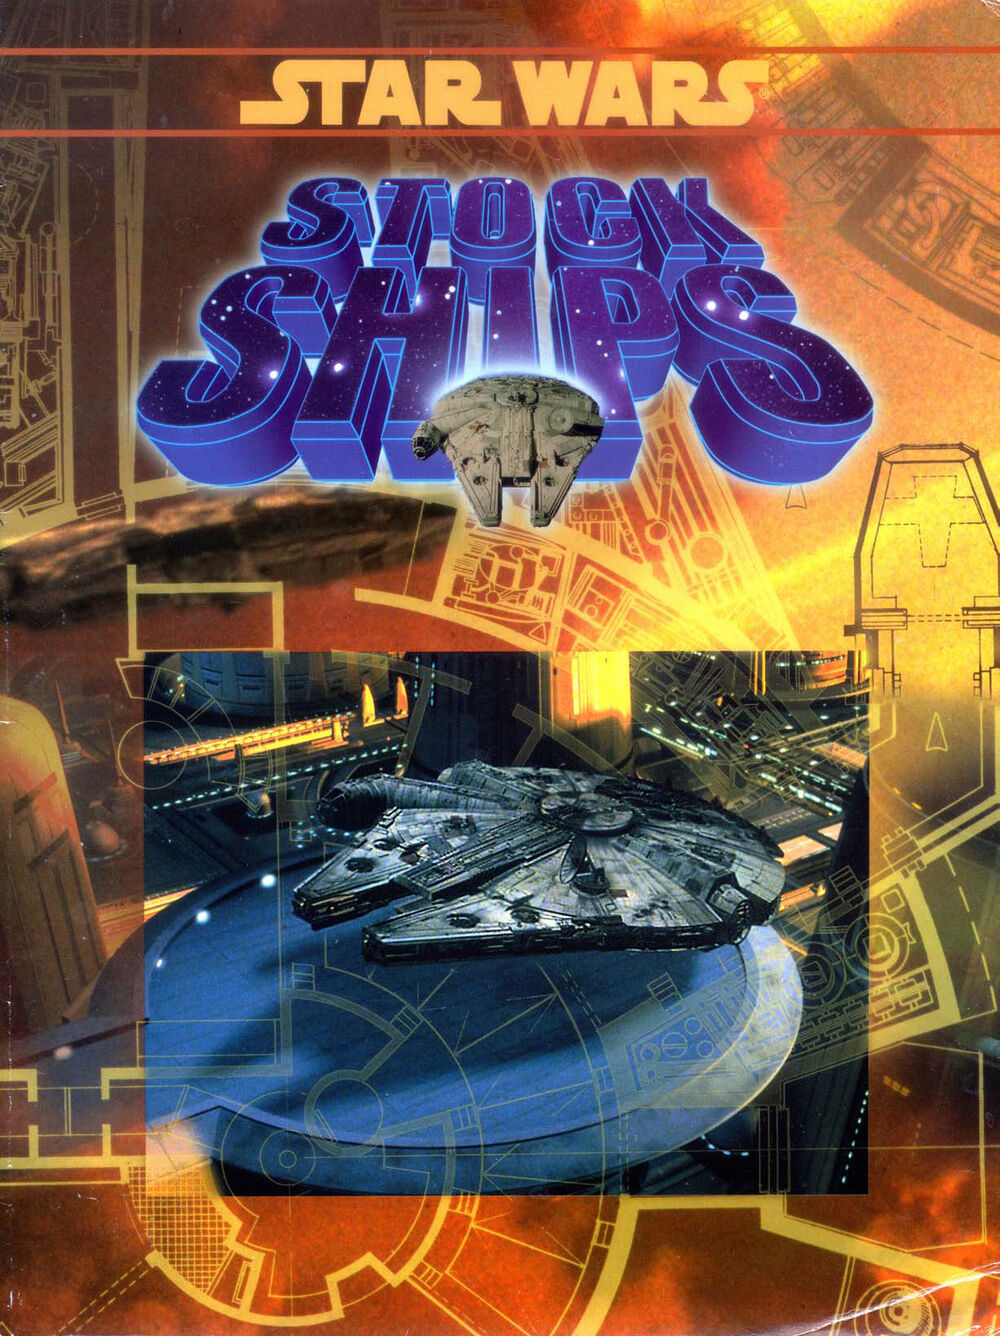 Star Wars: Stock Ships